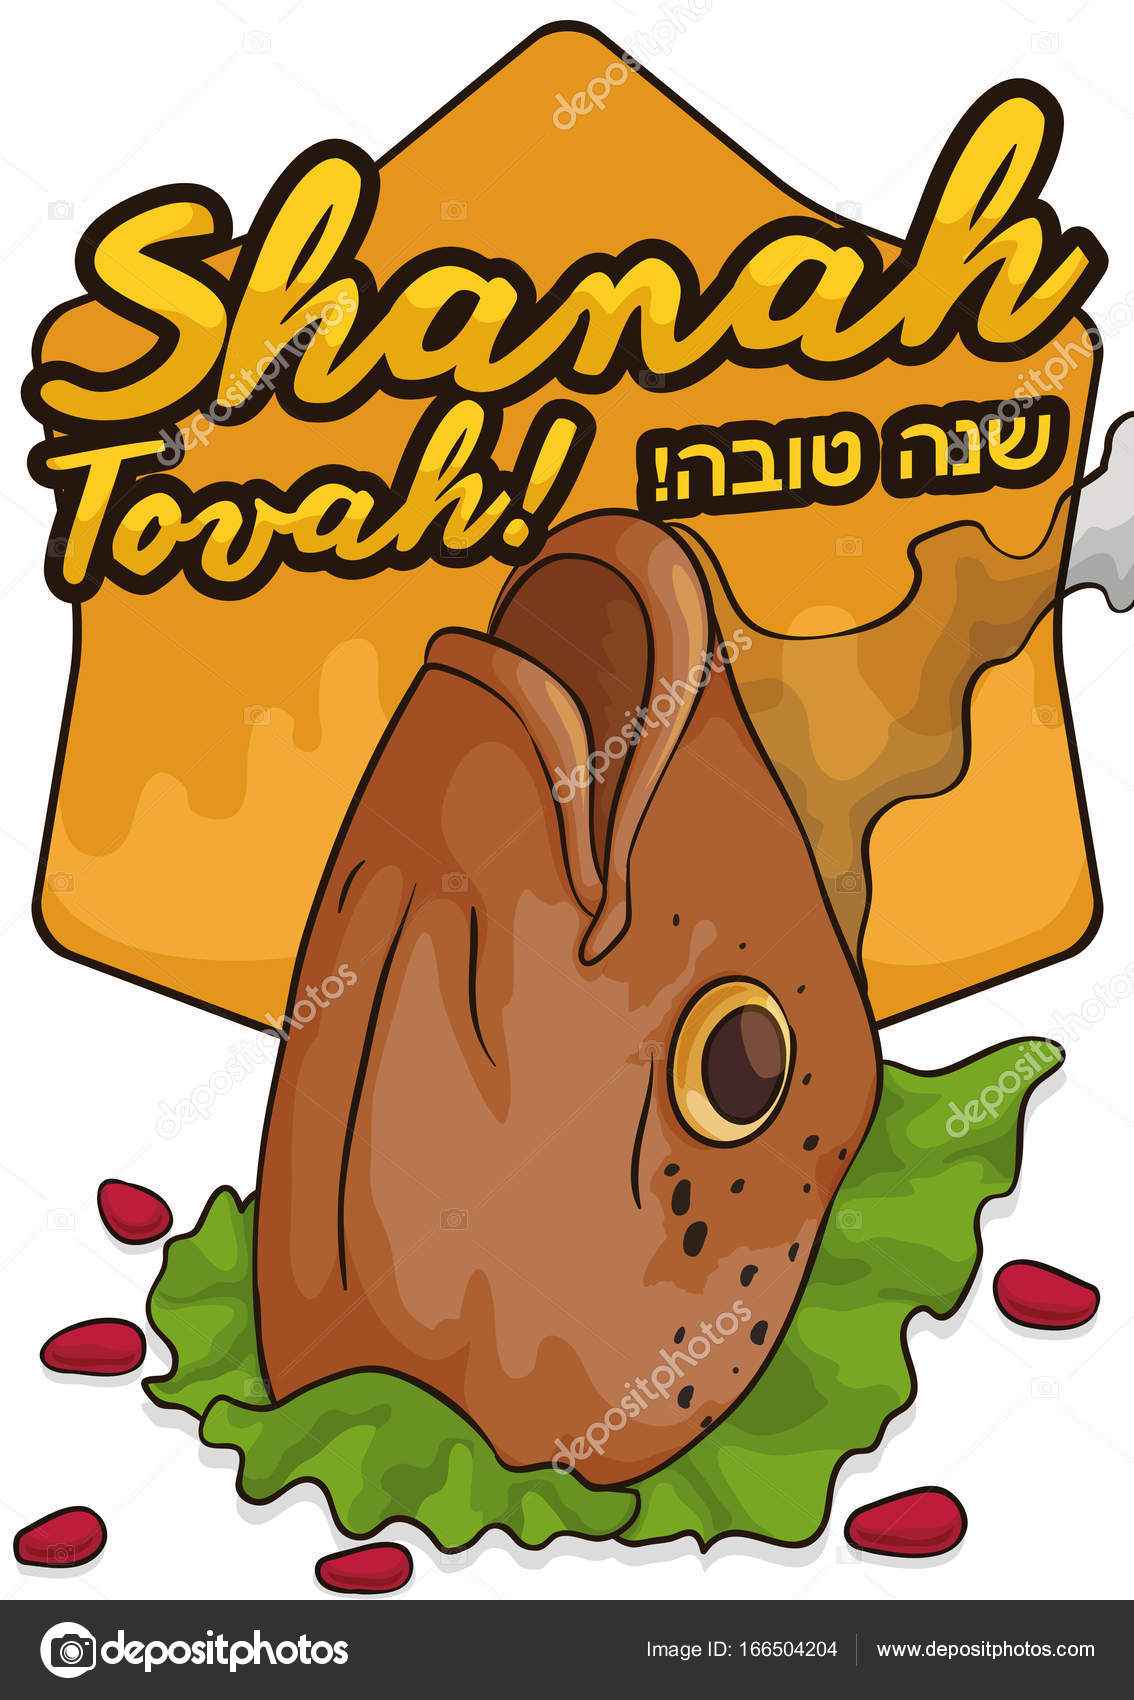 Fish head pomegranate seeds and greetings for jewish new year delicious fried fish head served with lettuce some pomegranate seeds good wishes and greetings shanah tovah written in hebrew for jewish new year or m4hsunfo